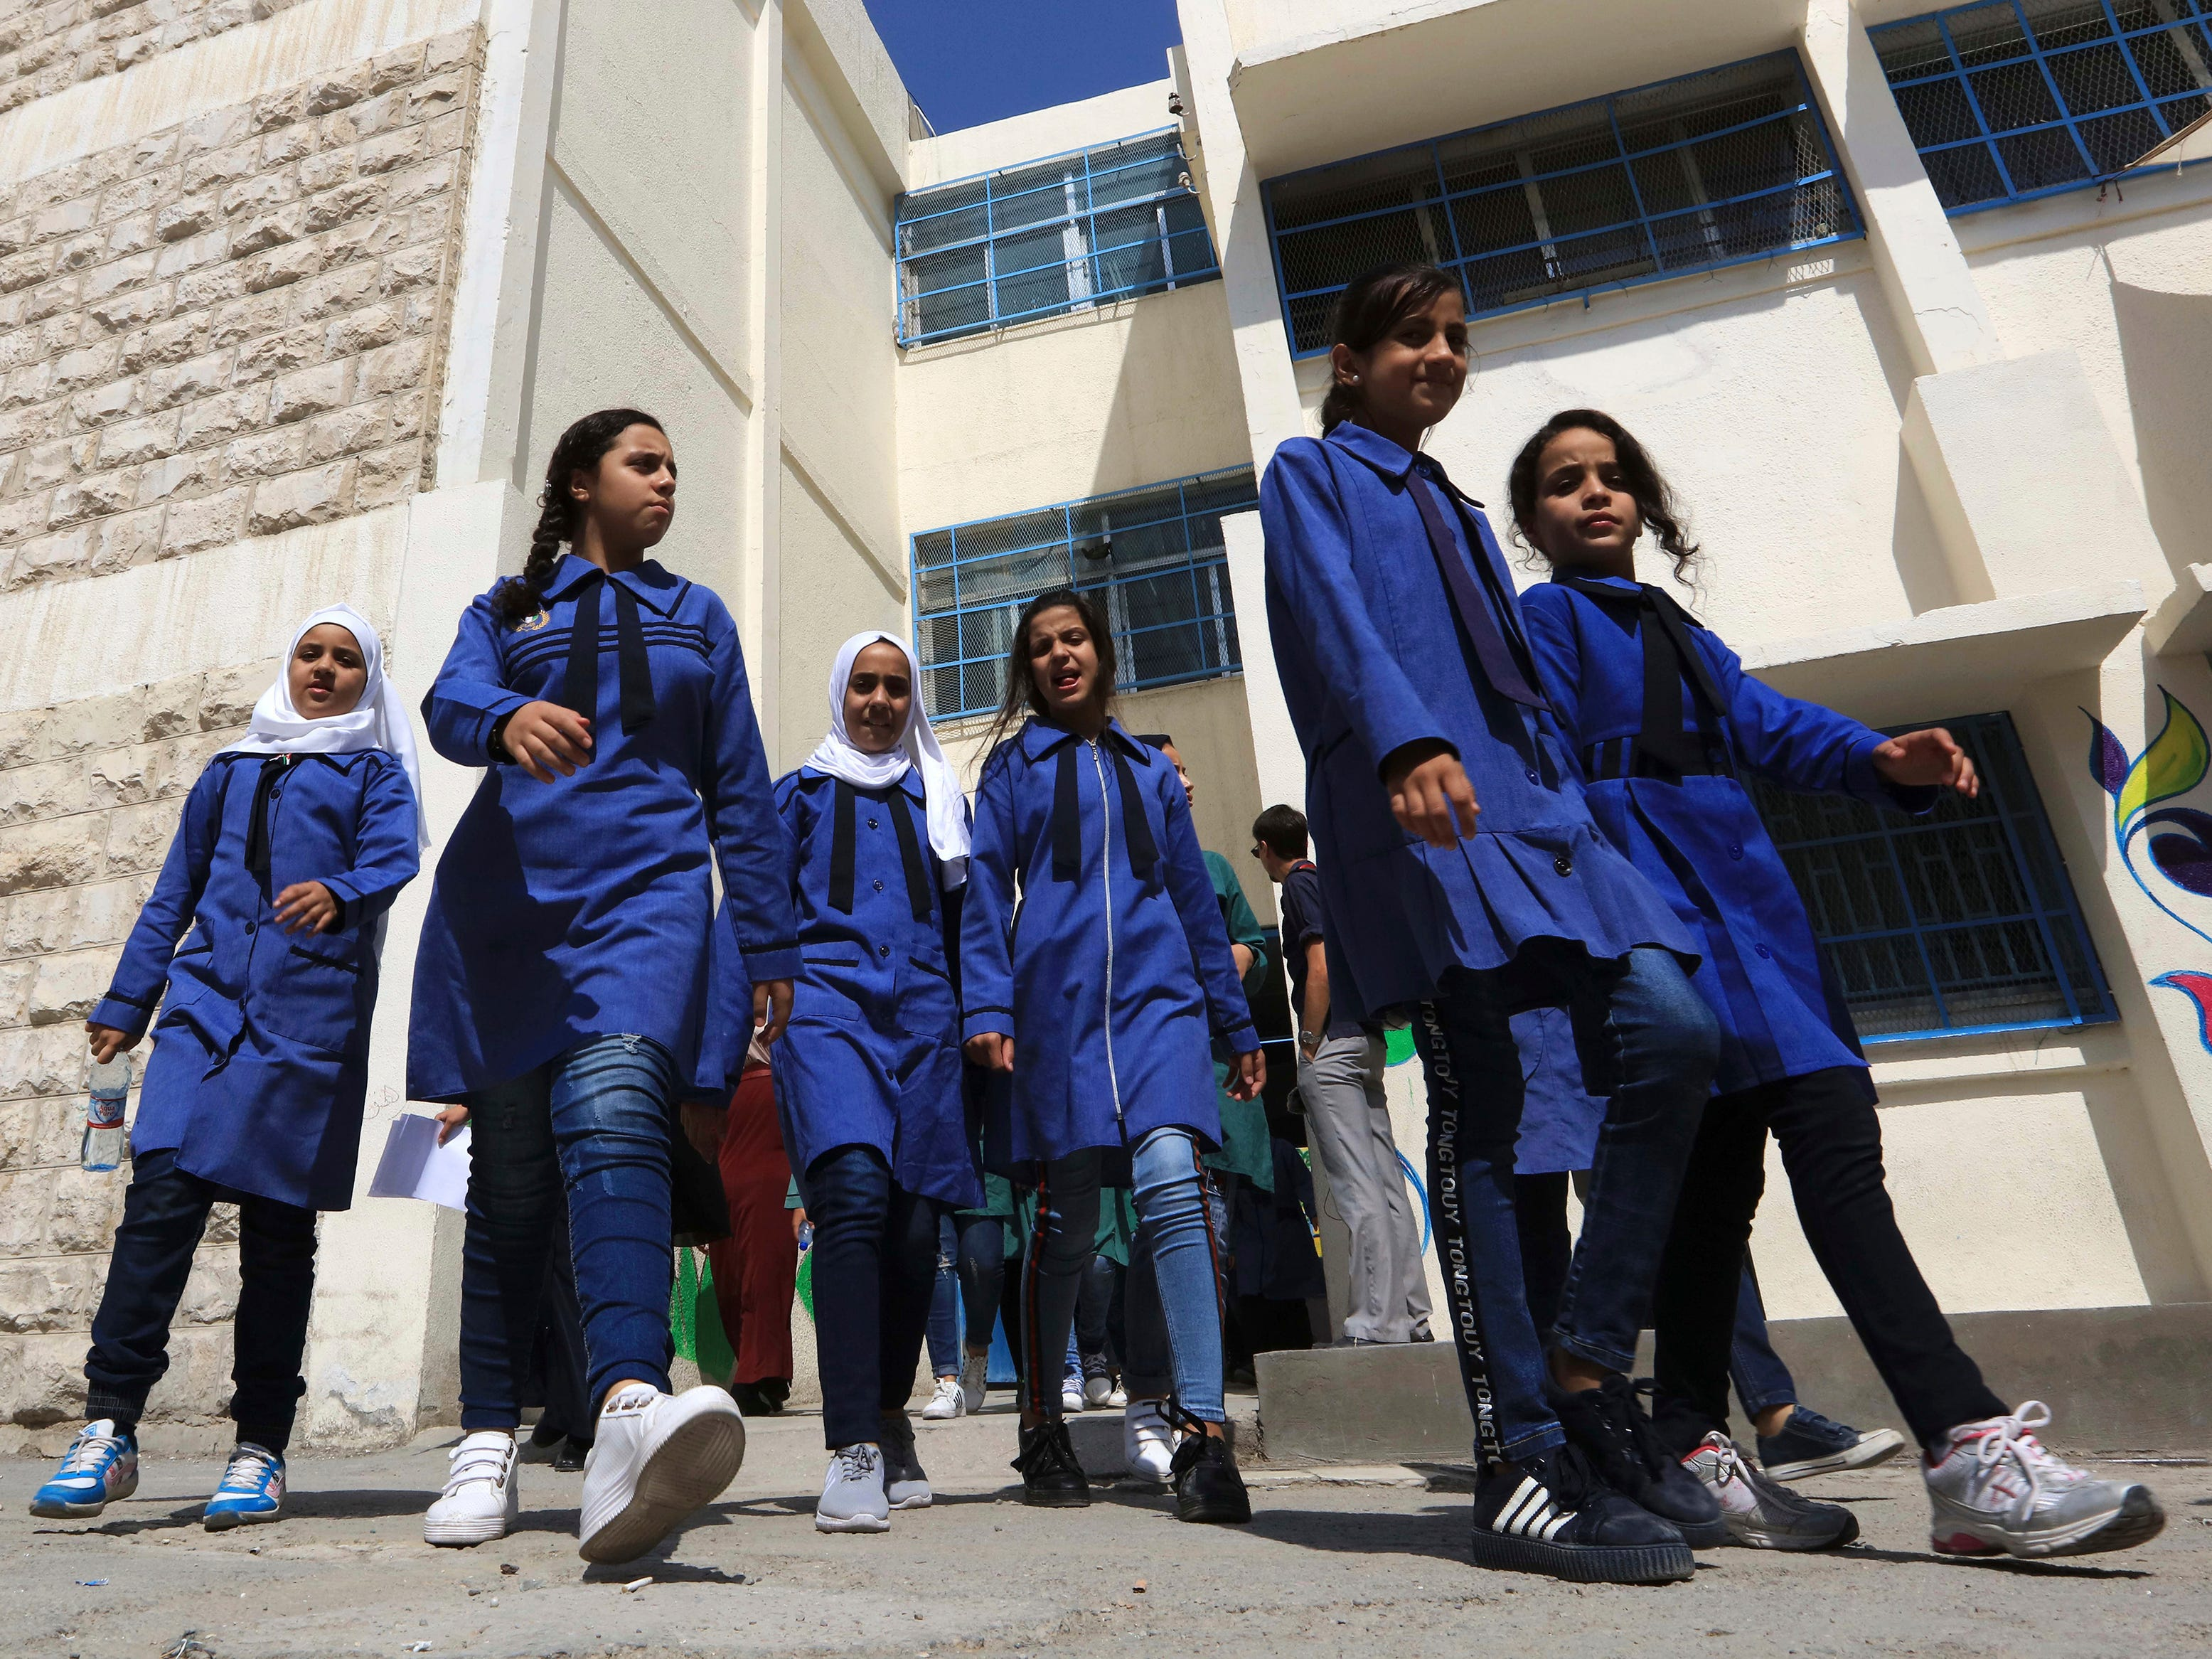 Refugee schoolchildren attend a ceremony to mark the return to school at one of the UNRWA schools at a Palestinian refugee camp Al-Wehdat, in Amman, Jordan, Sunday, Sept. 2, 2018. (AP Photo/Raad Adayleh) ORG XMIT: AMM10